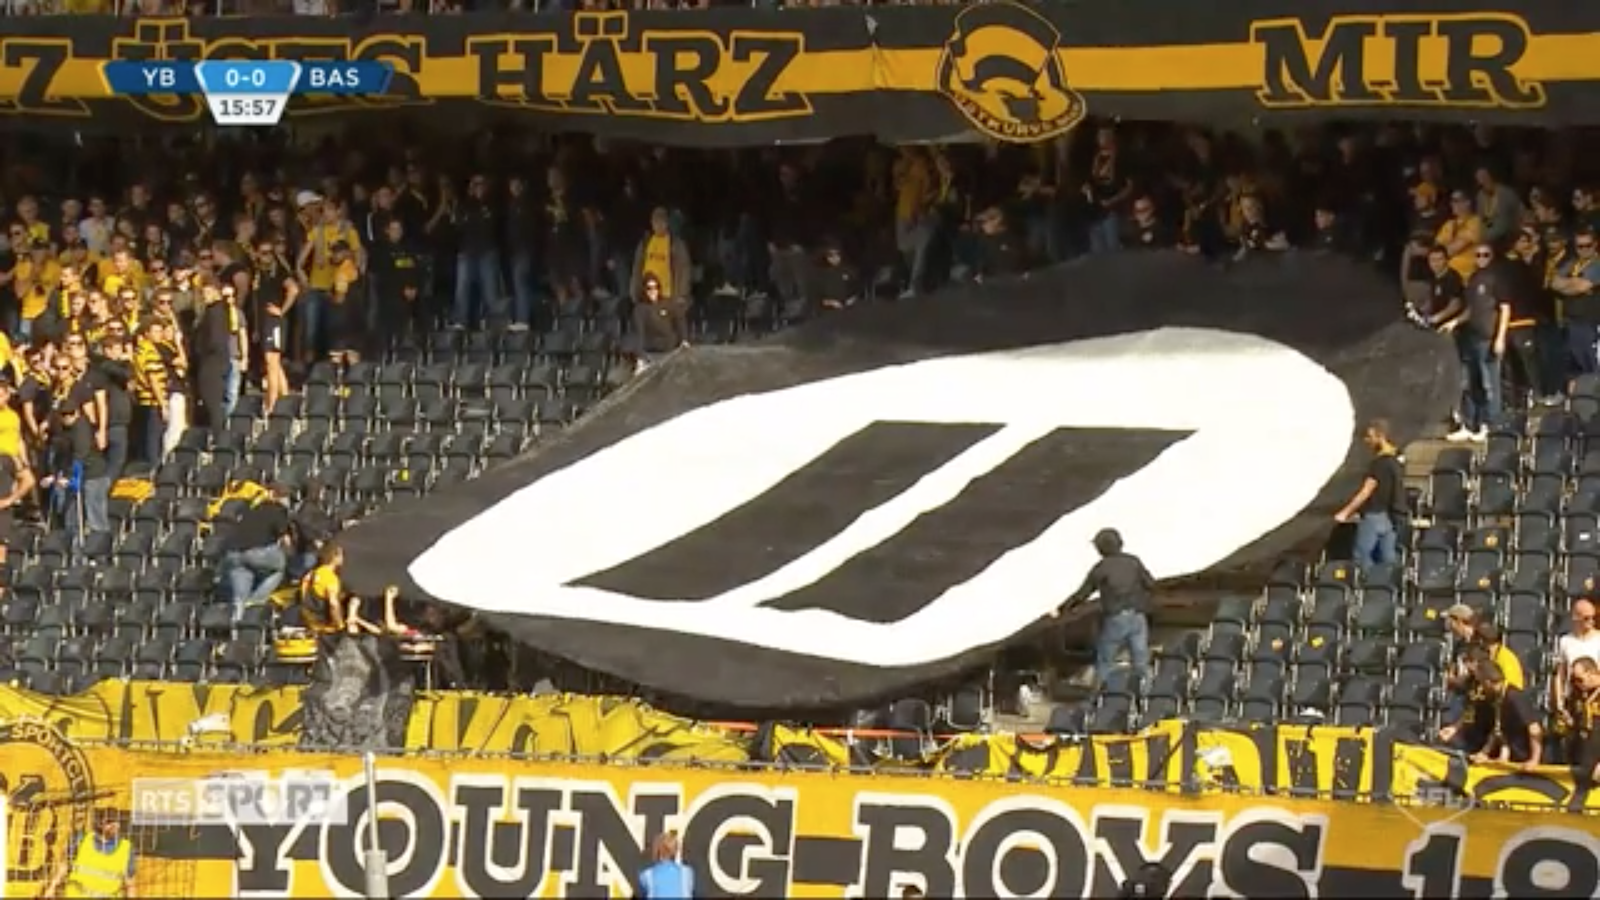 Swiss soccer fans interrupt game to protest esports